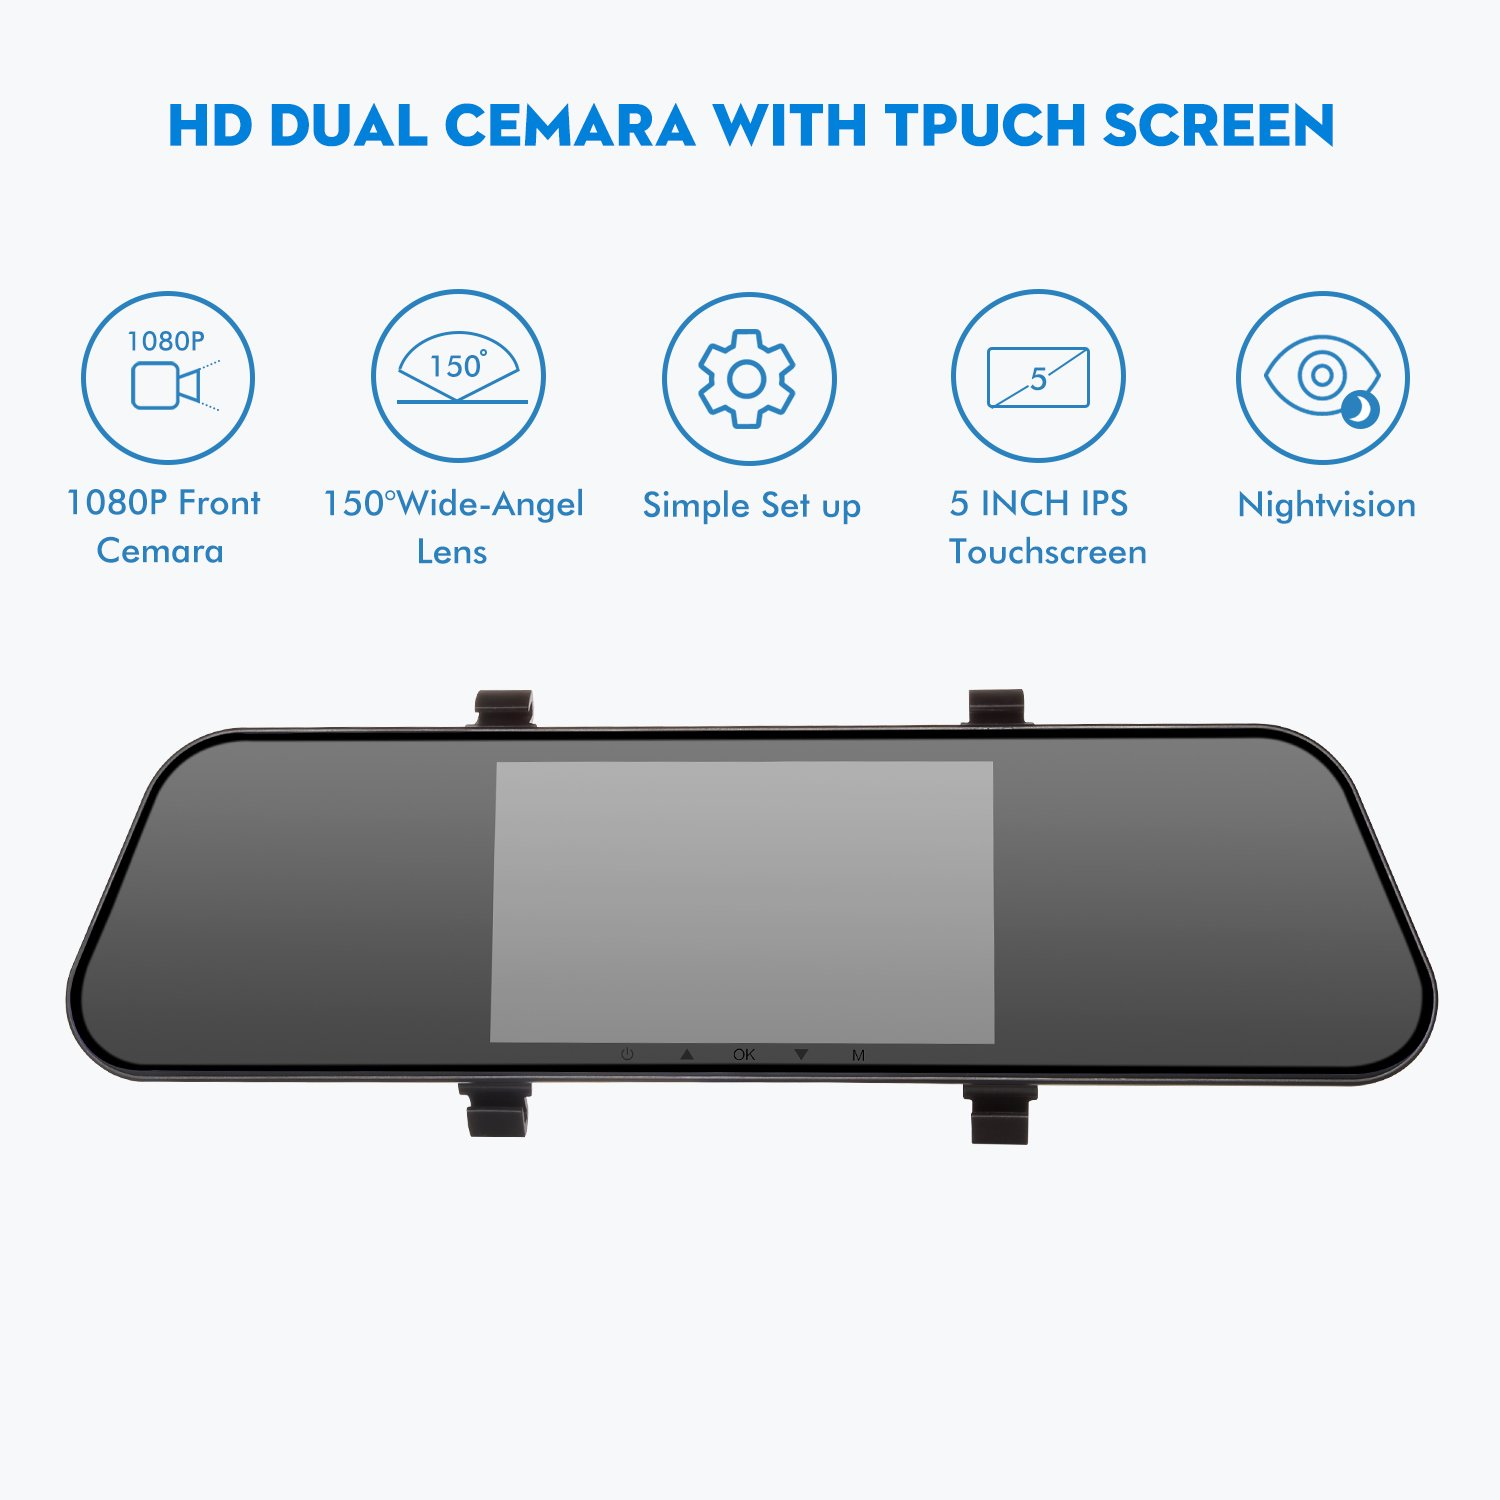 Car Video 4-way Video Car Switch Parking Camera 4 View Image Split-screen Control Box Kits Elegant In Style